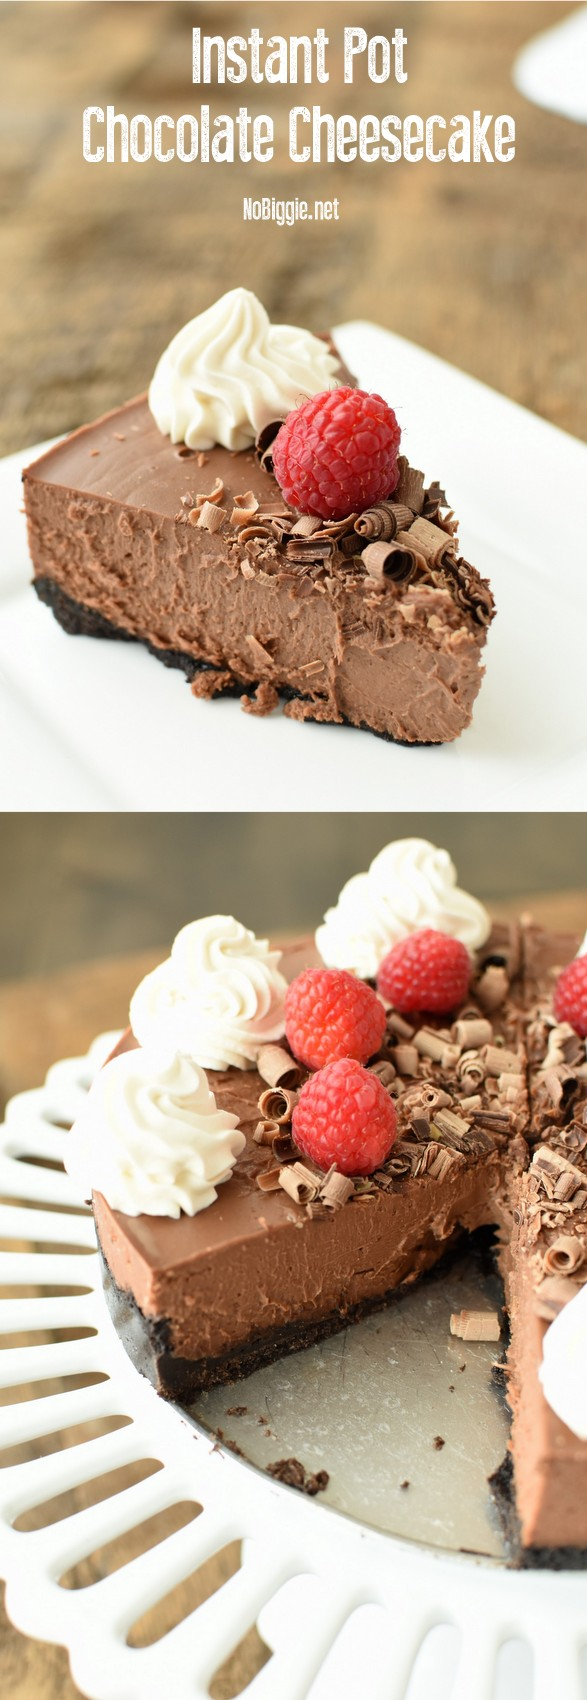 Instant Pot Chocolate Cheesecake | NoBiggie.net